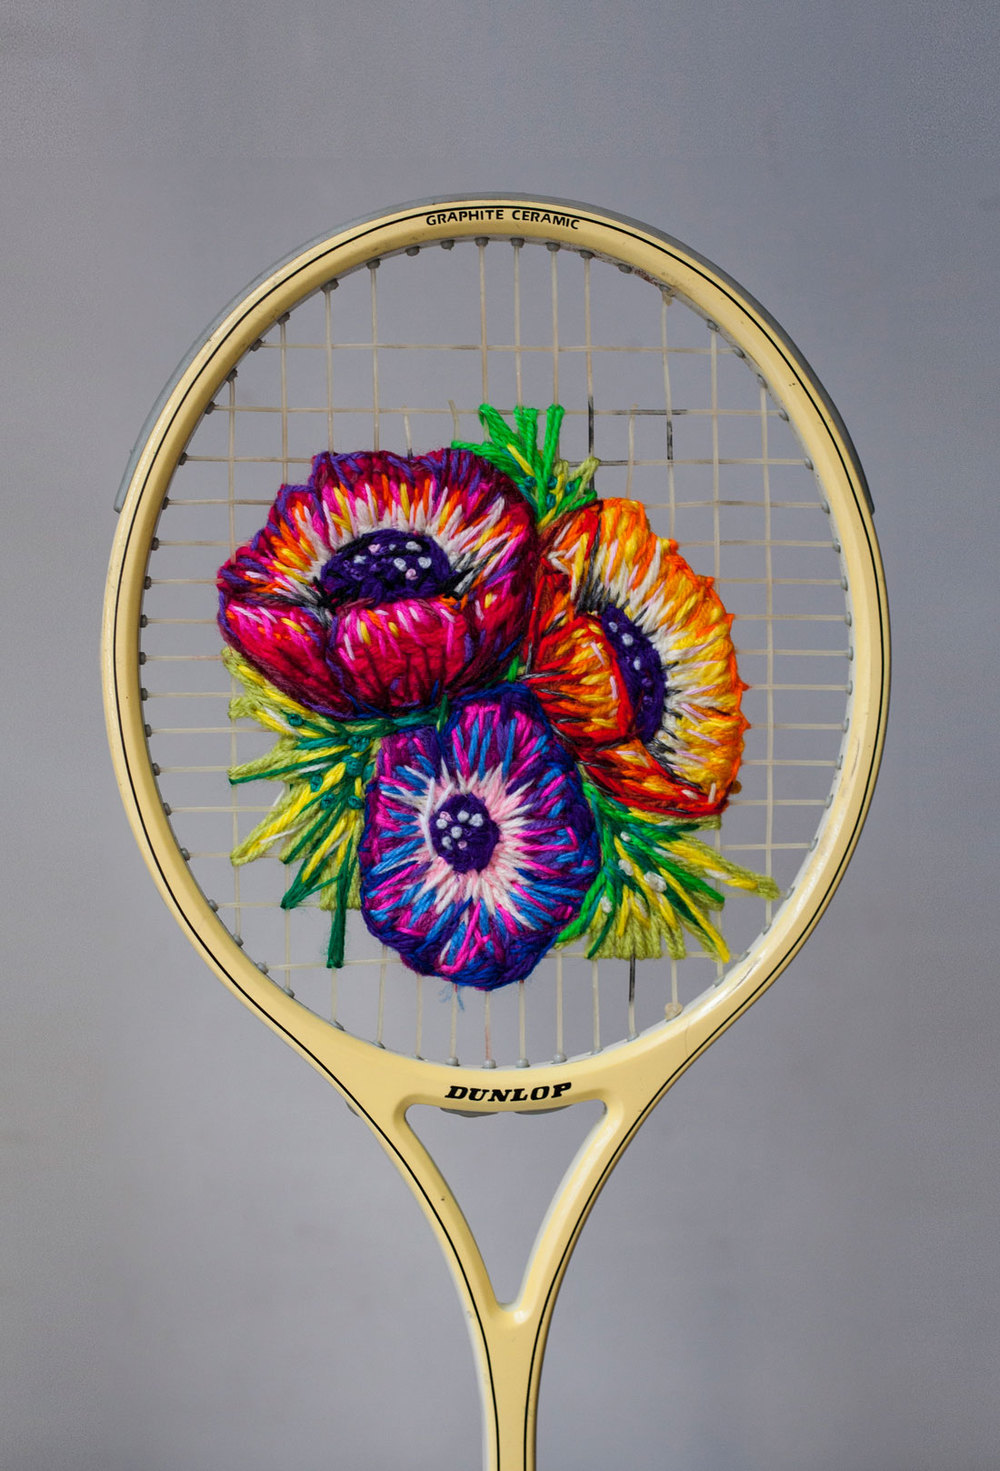 outstyled-tennis-racket-embroidery-7.jpg